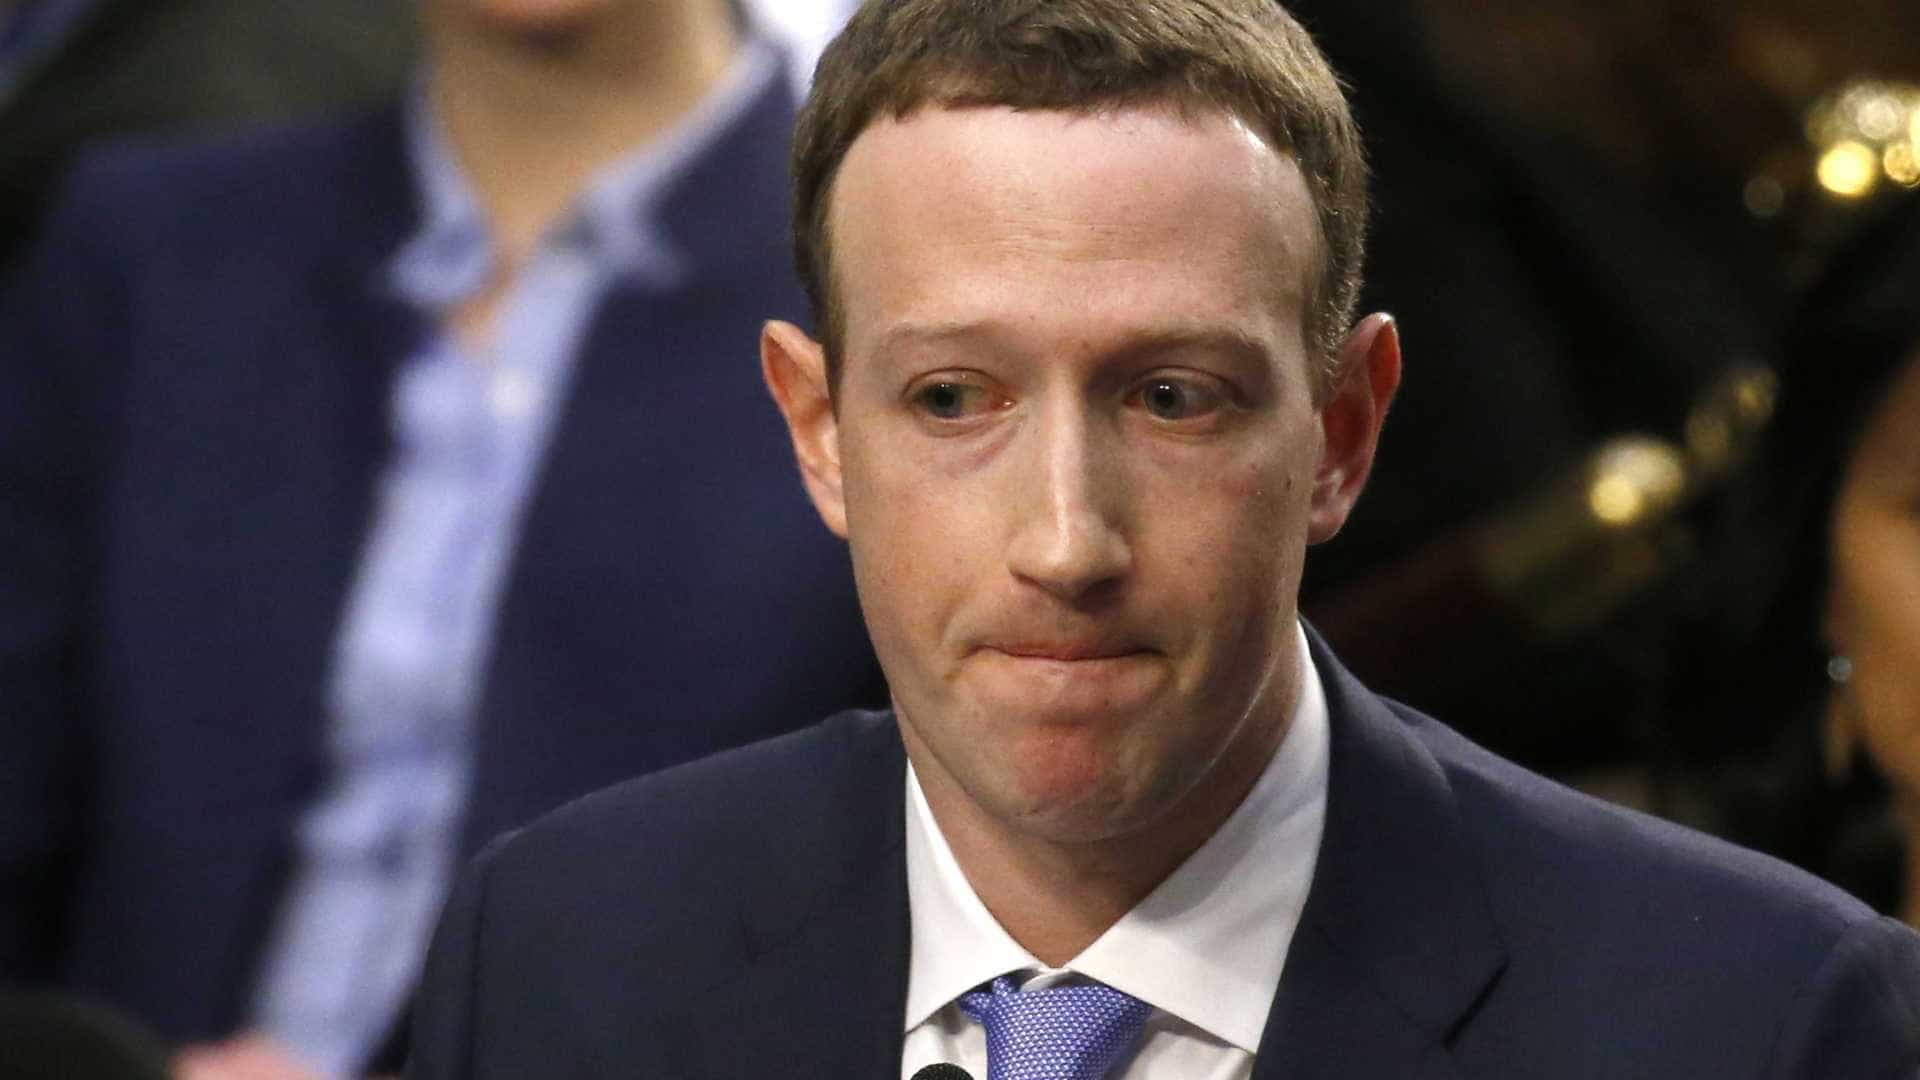 Zuckerberg nega que deixará comando do Facebook